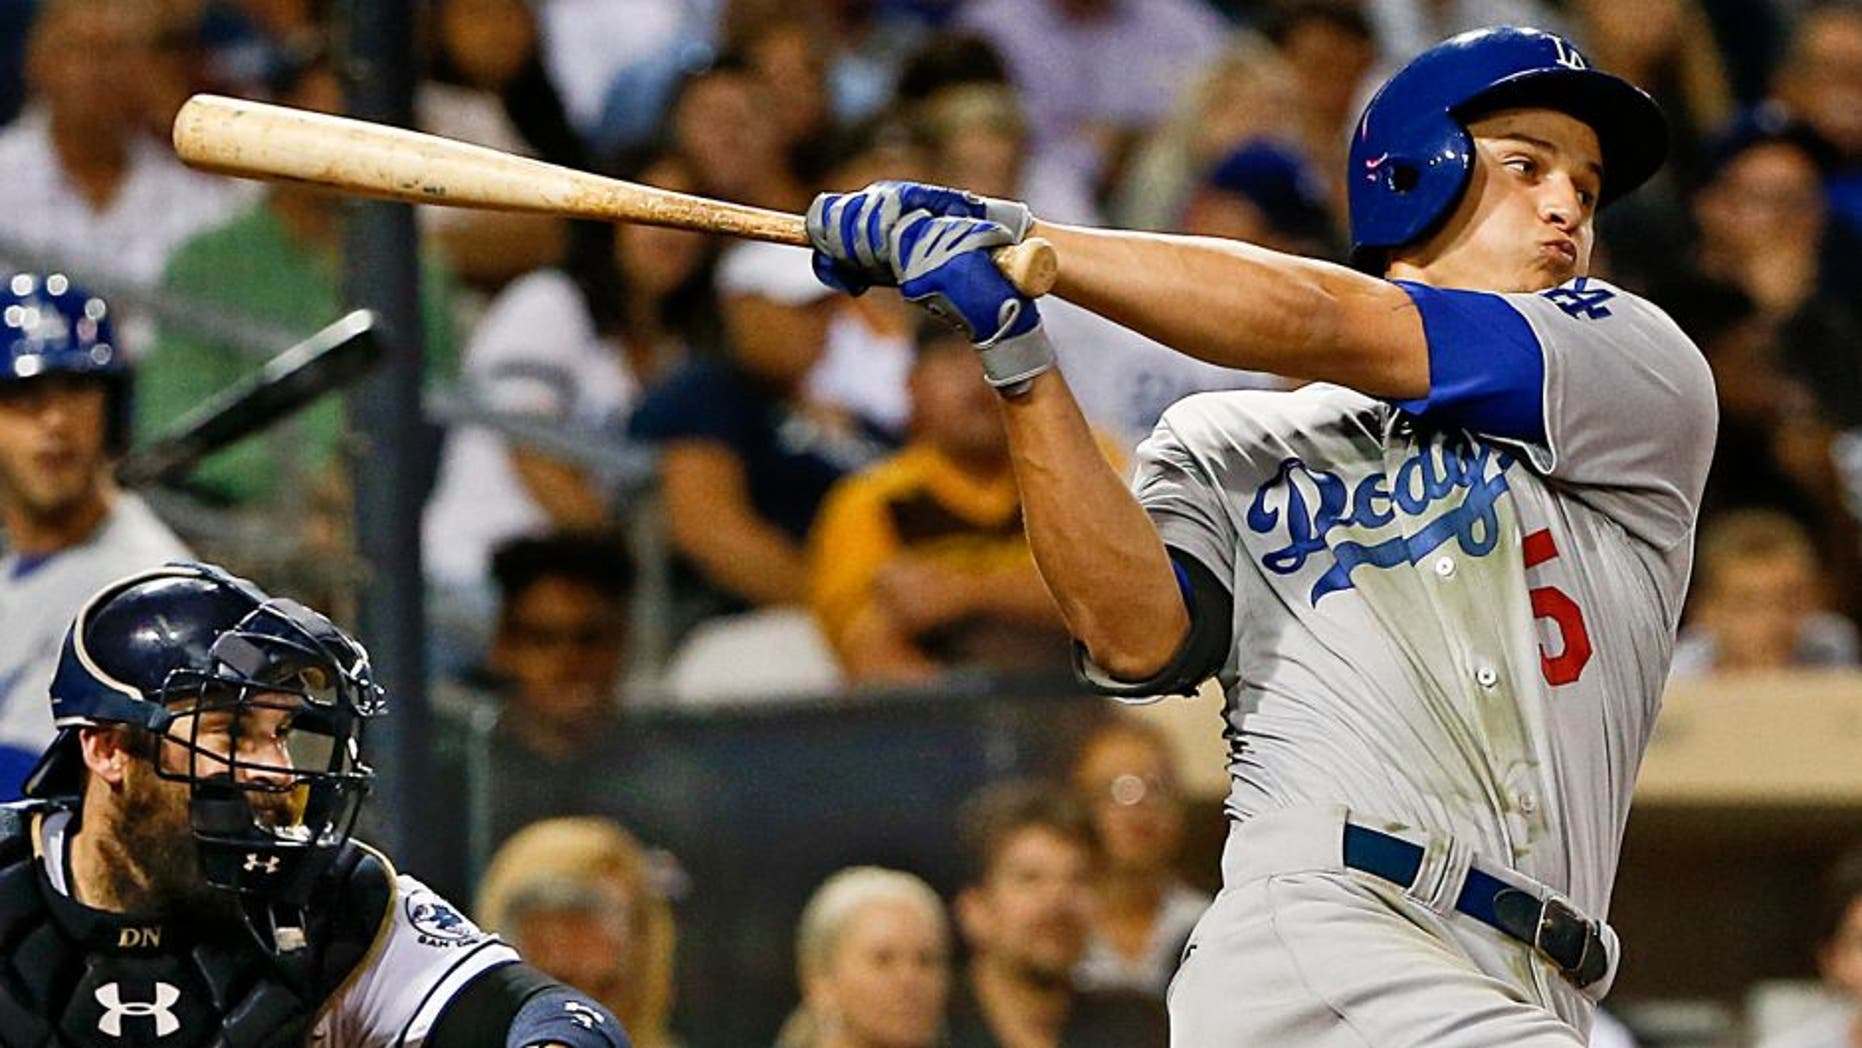 Los Angeles Dodgers' Corey Seager follows through with his second hit in his major league debut, during the sixth inning of a baseball game against the San Diego Padres on Thursday, Sept. 3, 2015, in San Diego. (AP Photo/Lenny Ignelzi)